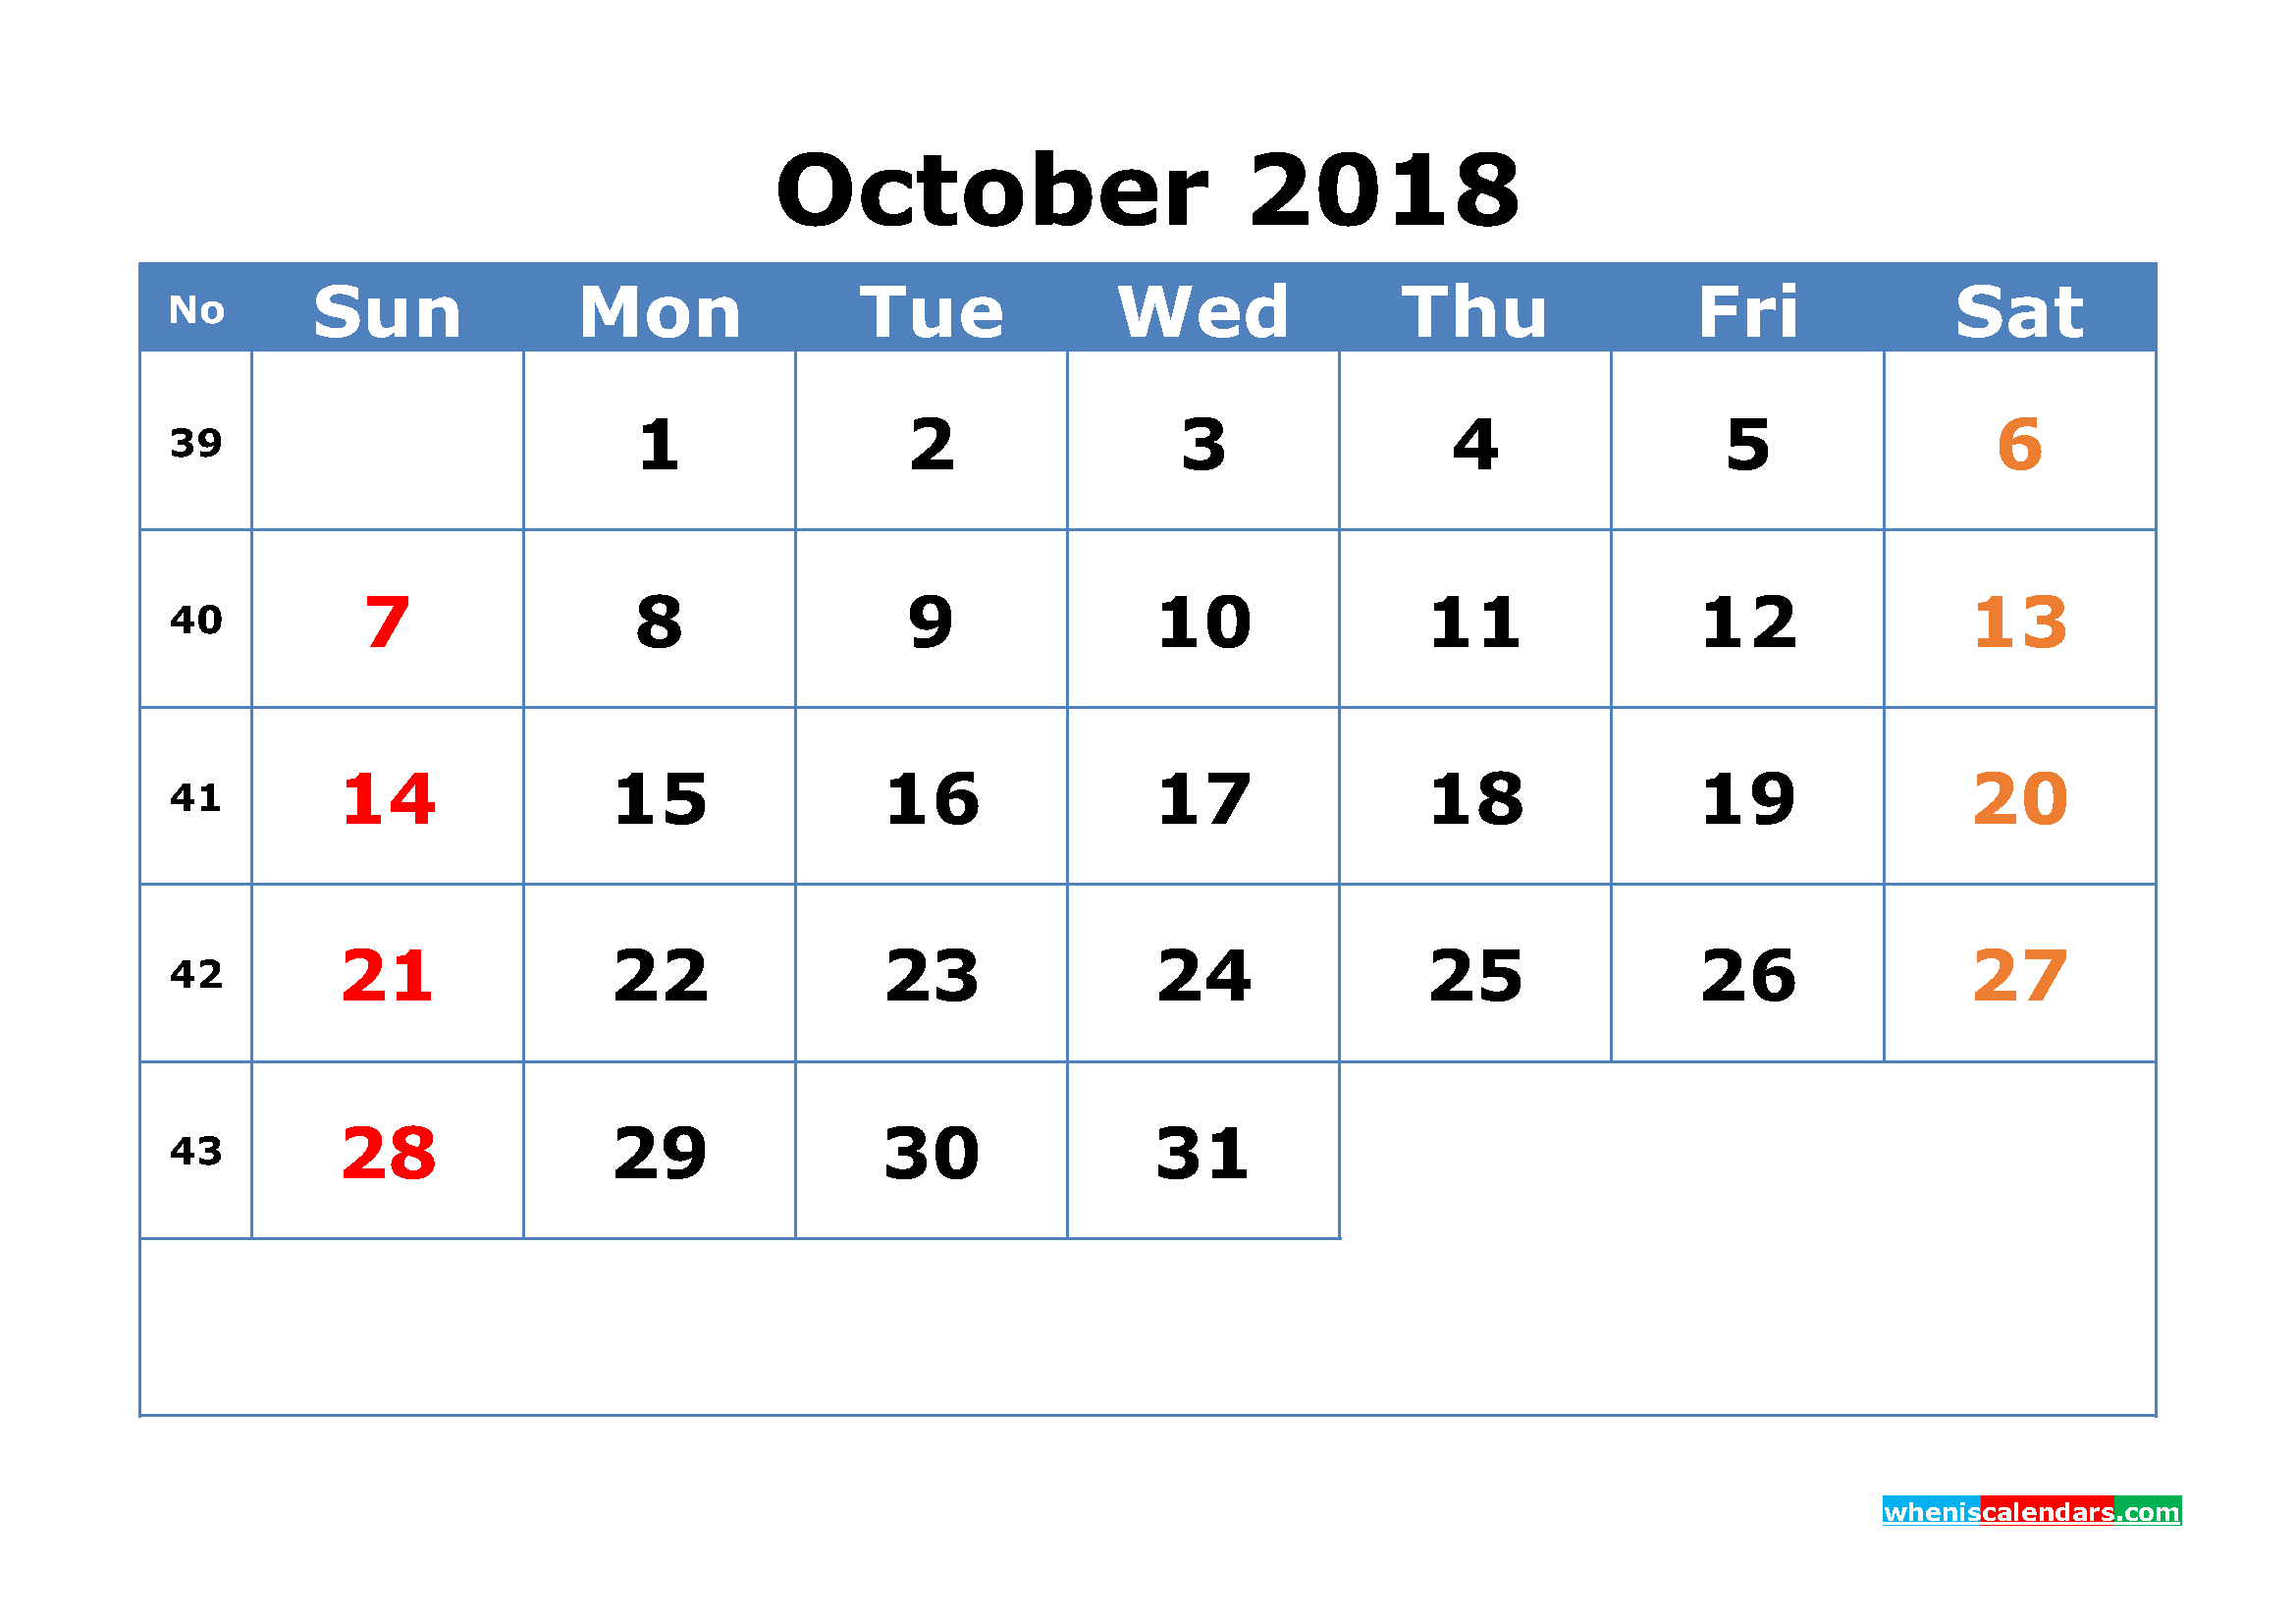 Printable Calendar October 2018 with Week Numbers Pdf, Image